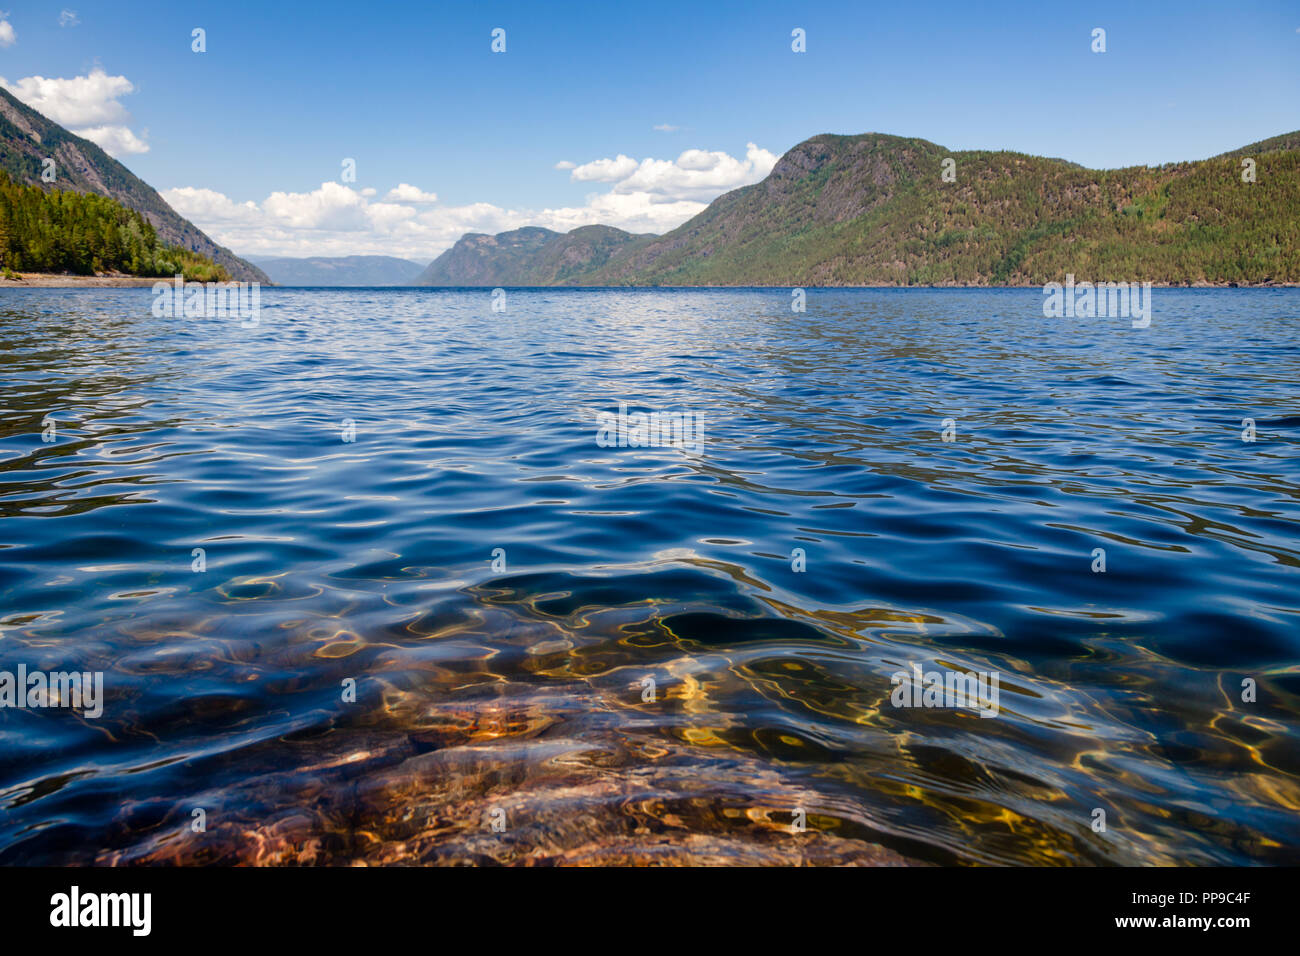 Crystal clear water of Lake Tinnsja (Tinn, Tinnsjo or Tinnsjoen) in Telemark County,  Norway, one of the largest lakes in Norway, and one of the deepe - Stock Image